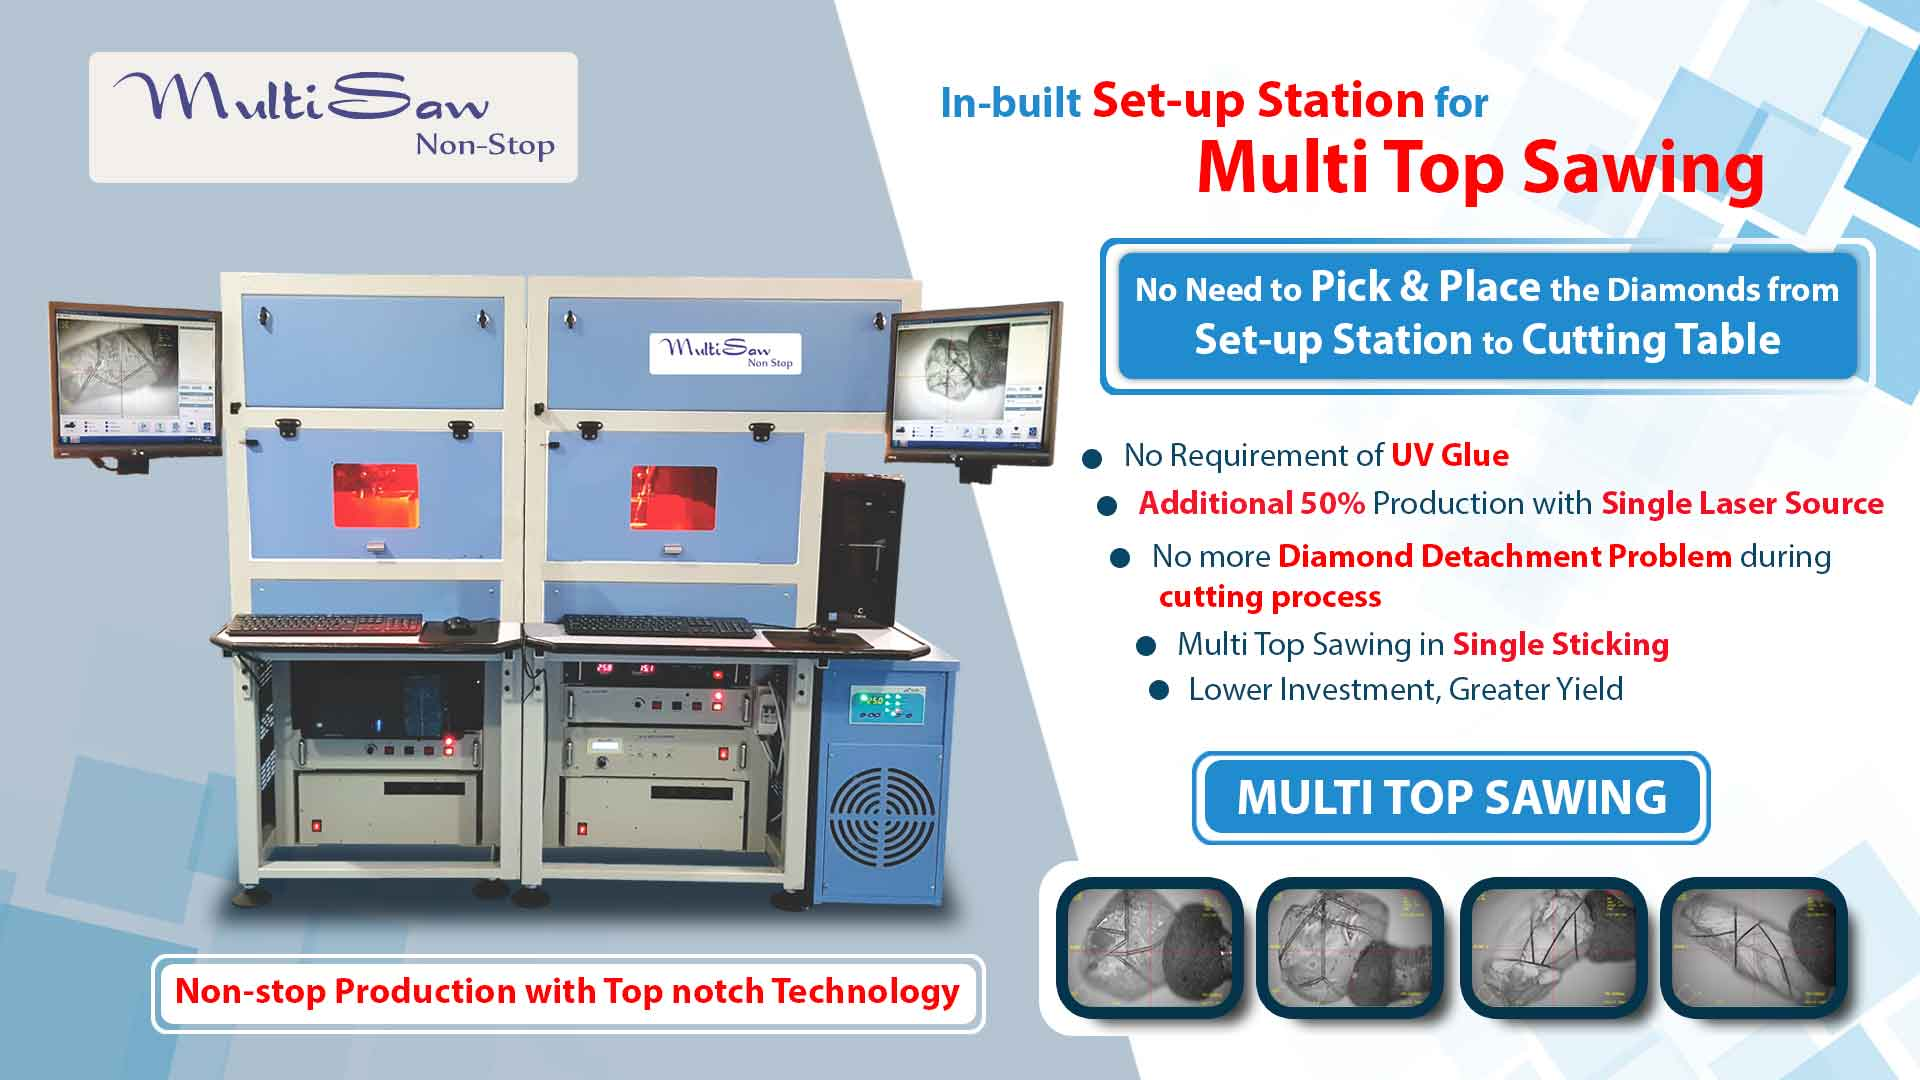 Multi Top Sawing